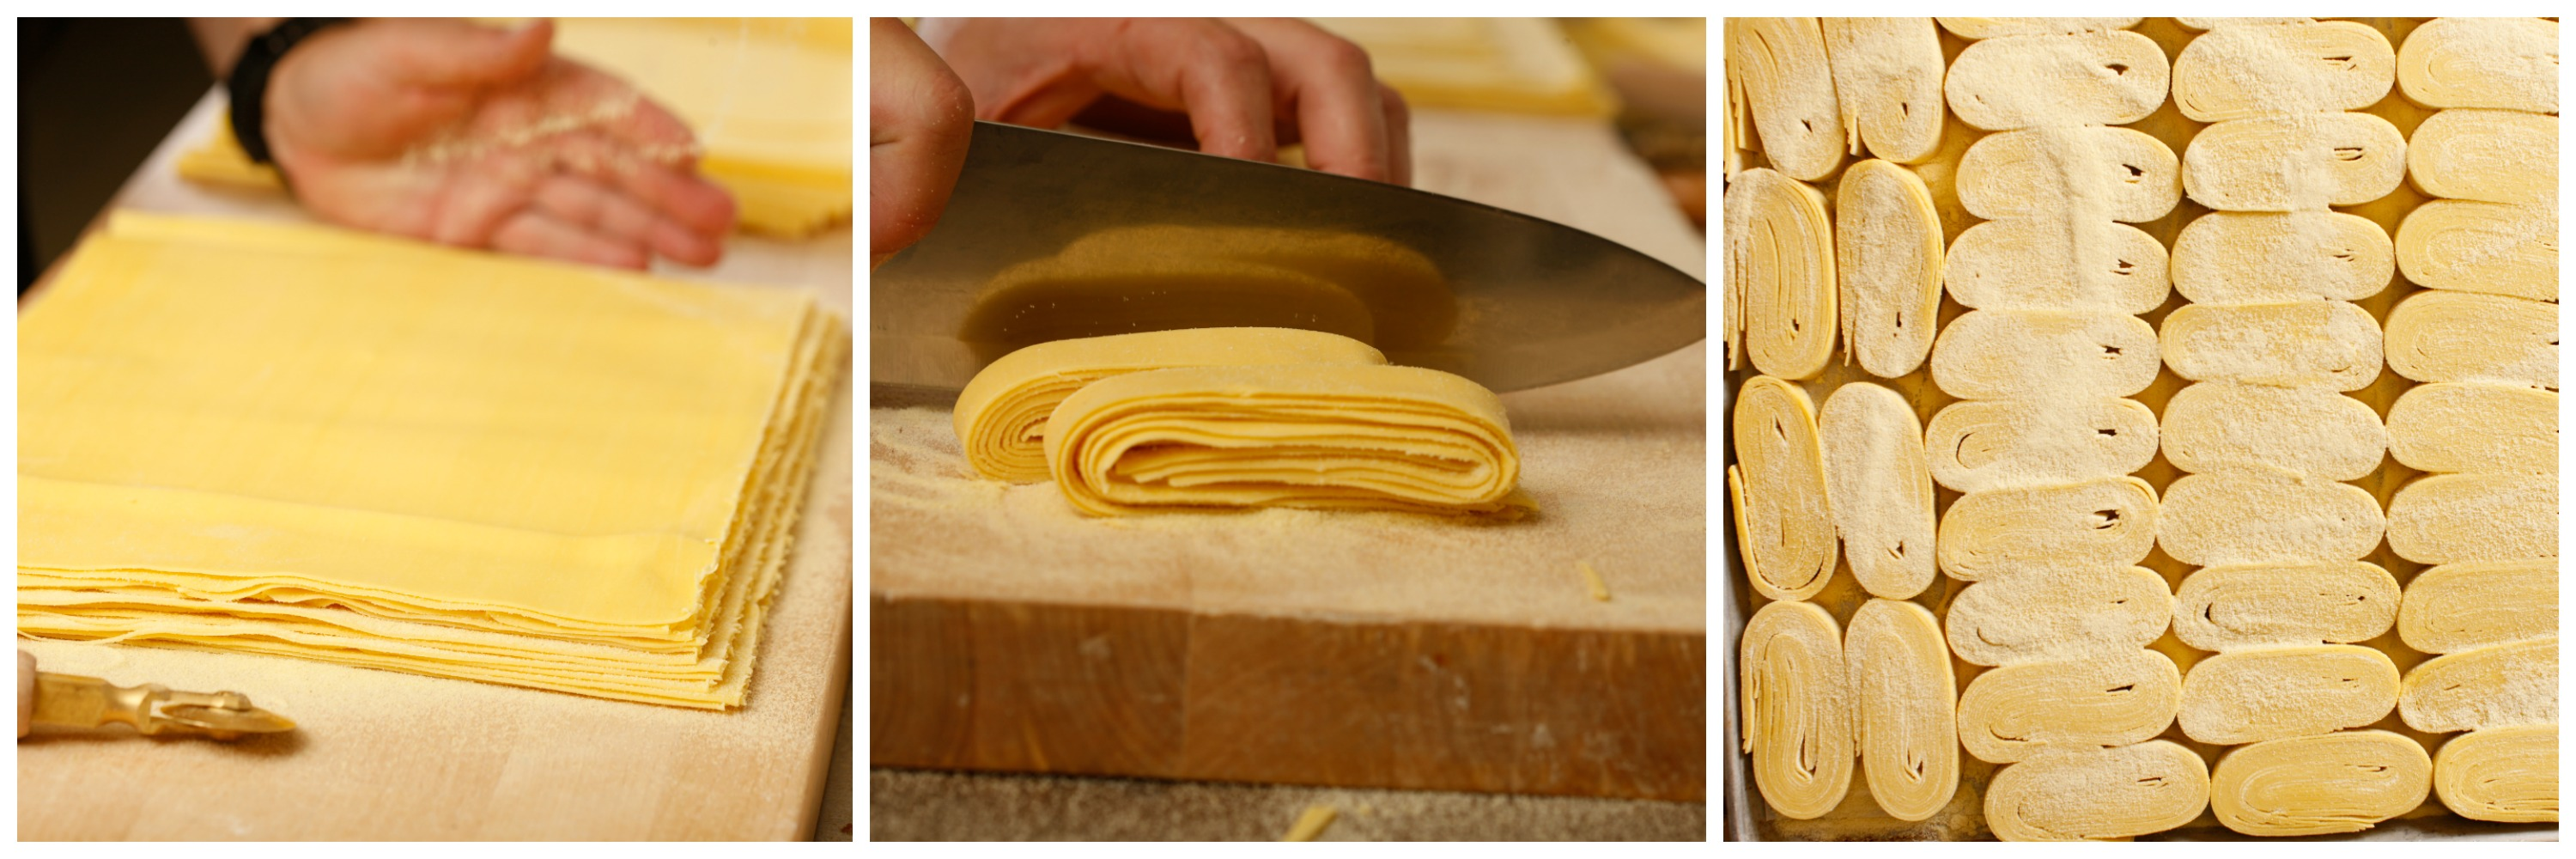 Handcutting pasta noodles at RPM Italian